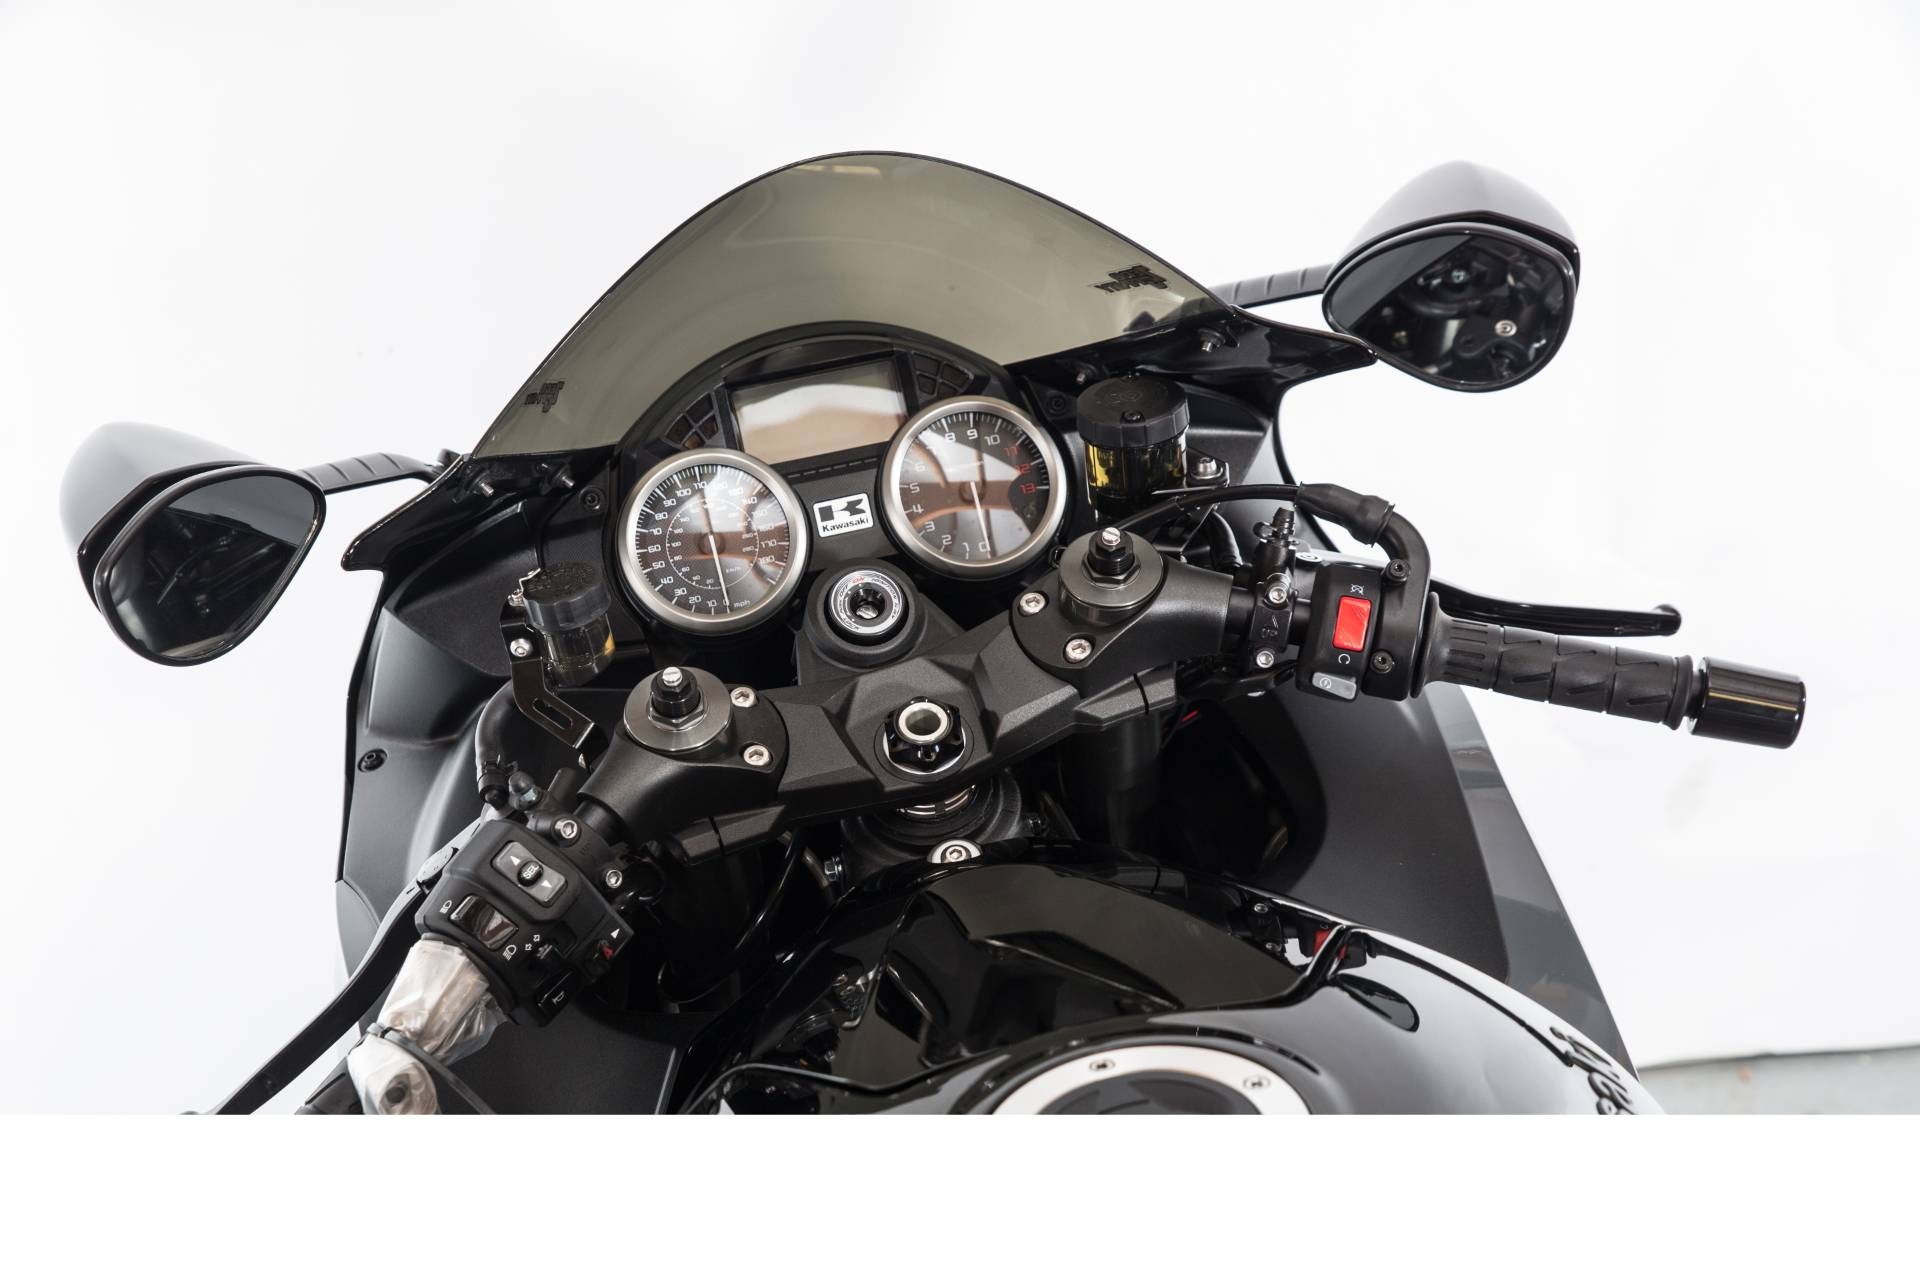 2018 Kawasaki ZX1400 in Lexington, North Carolina